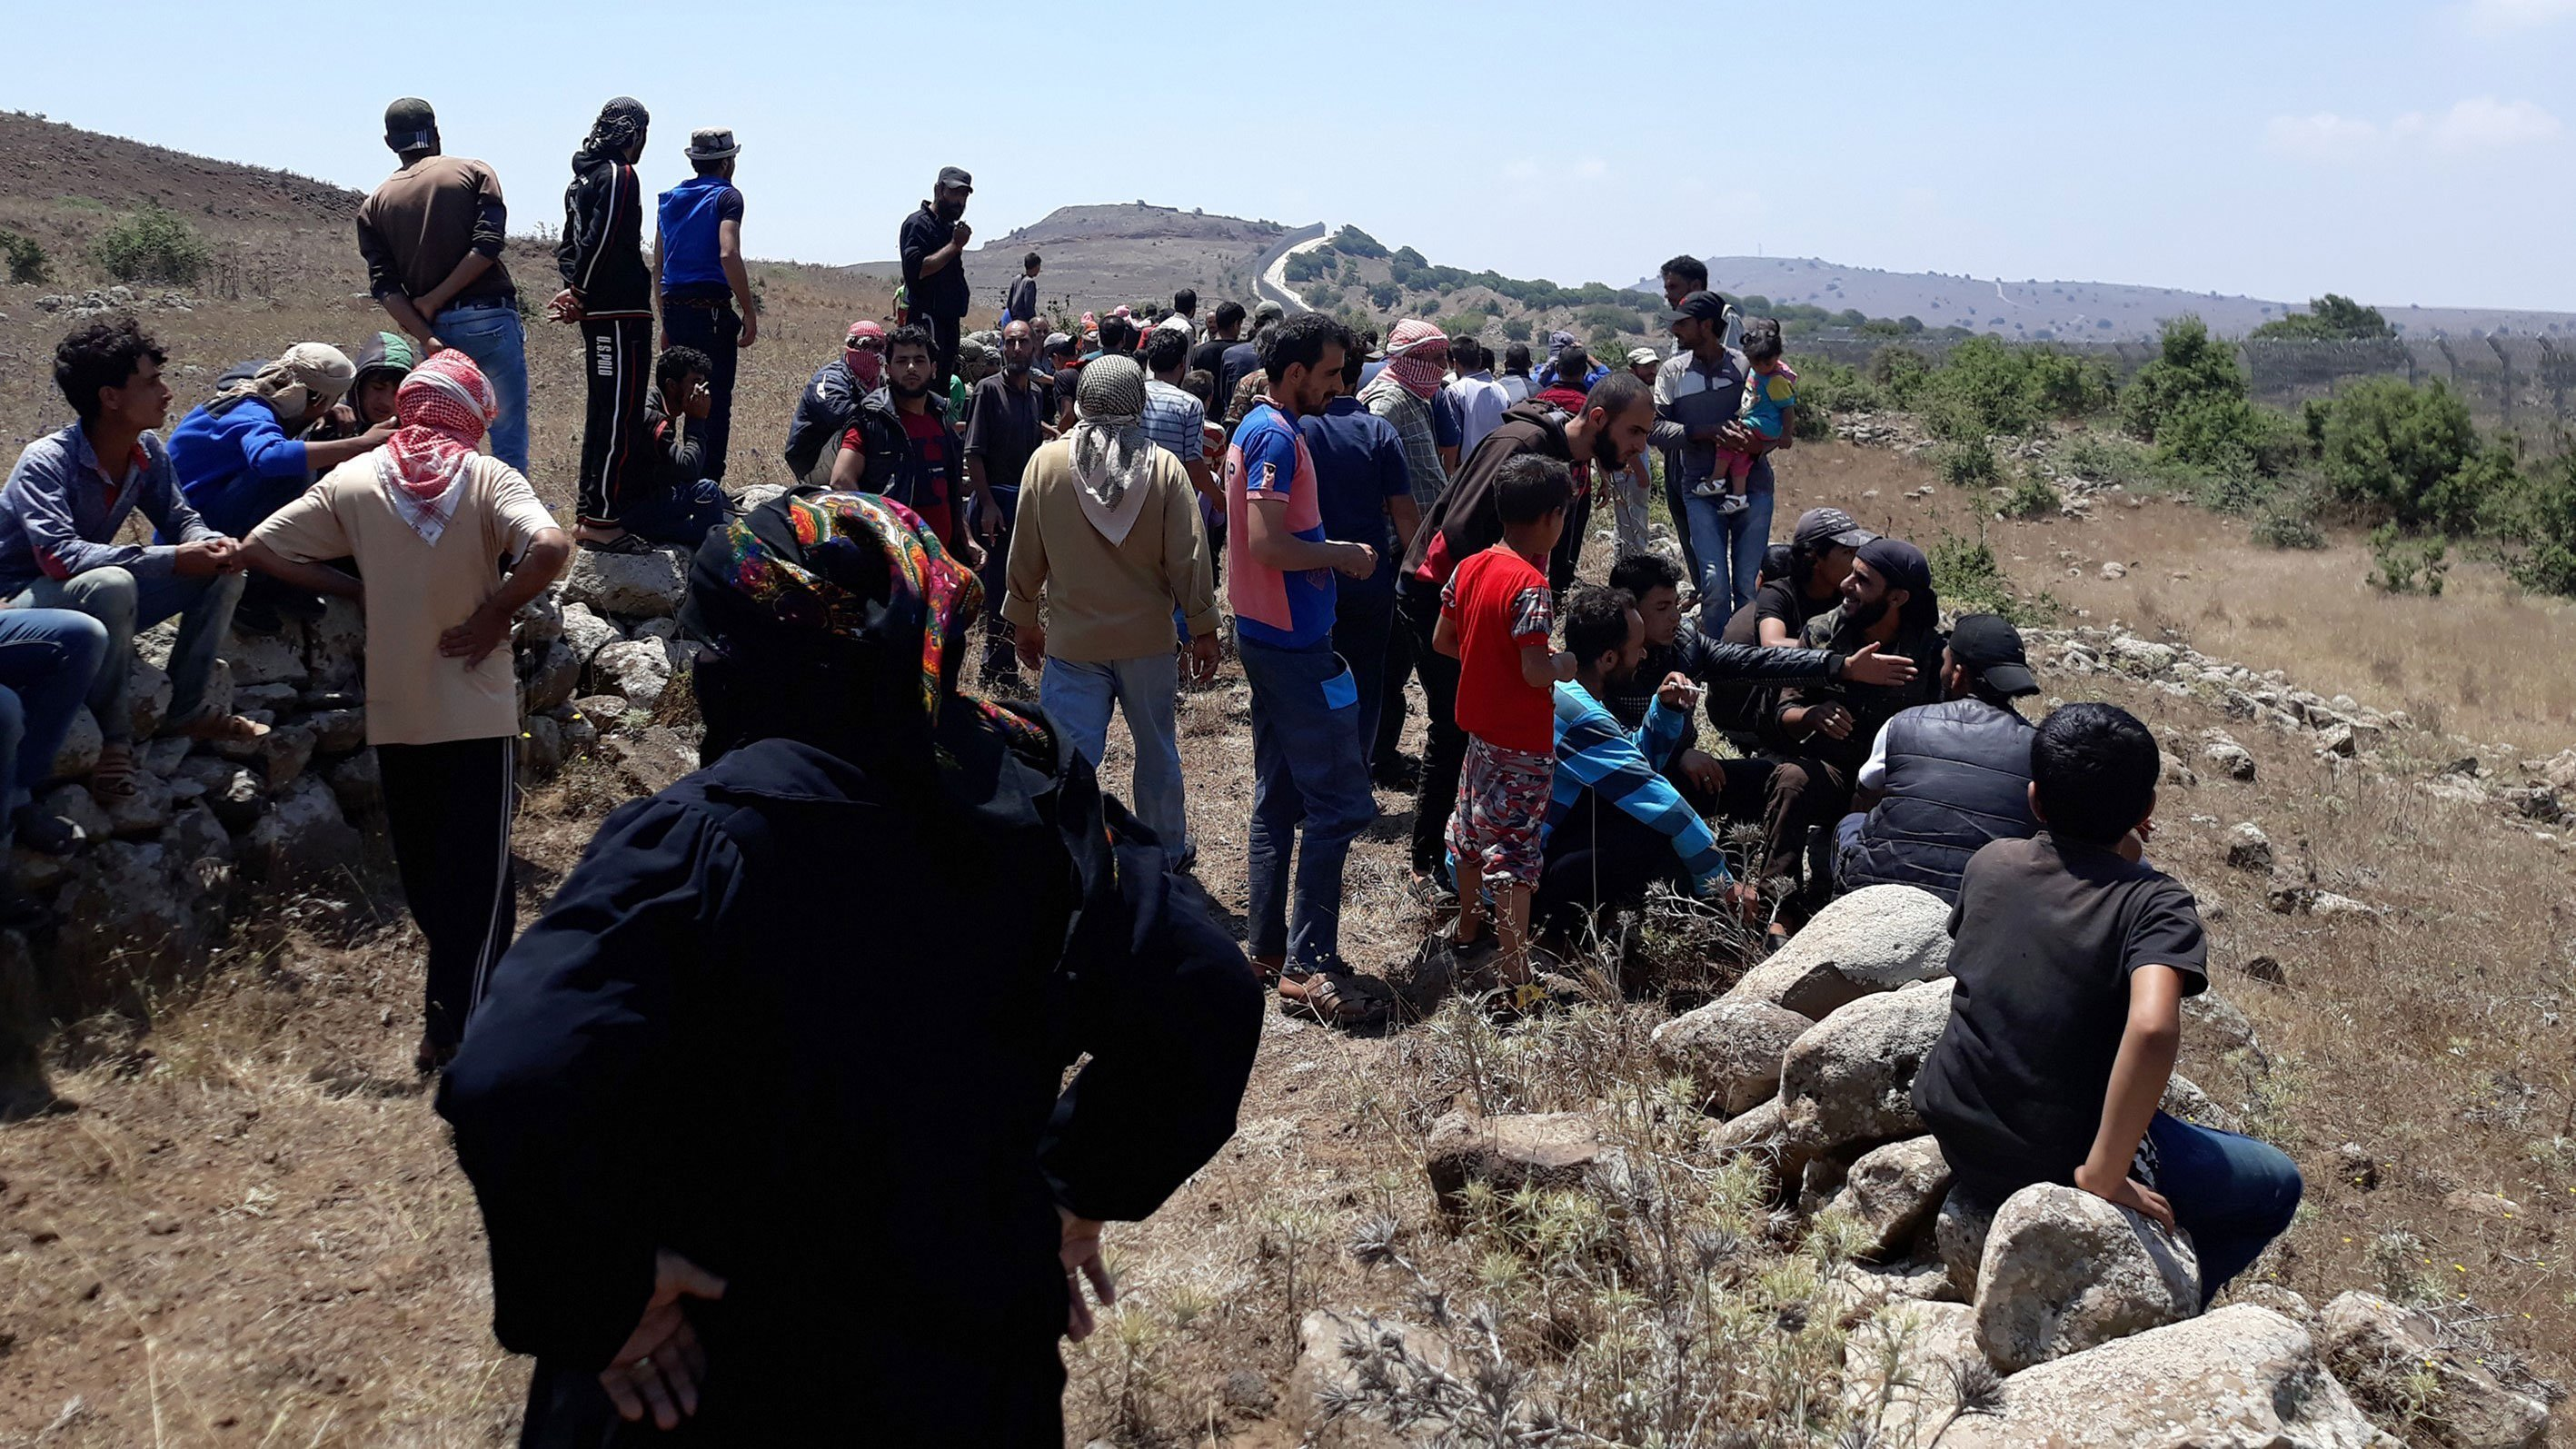 Displaced Syrians march close to Israel; airstrike kills 10